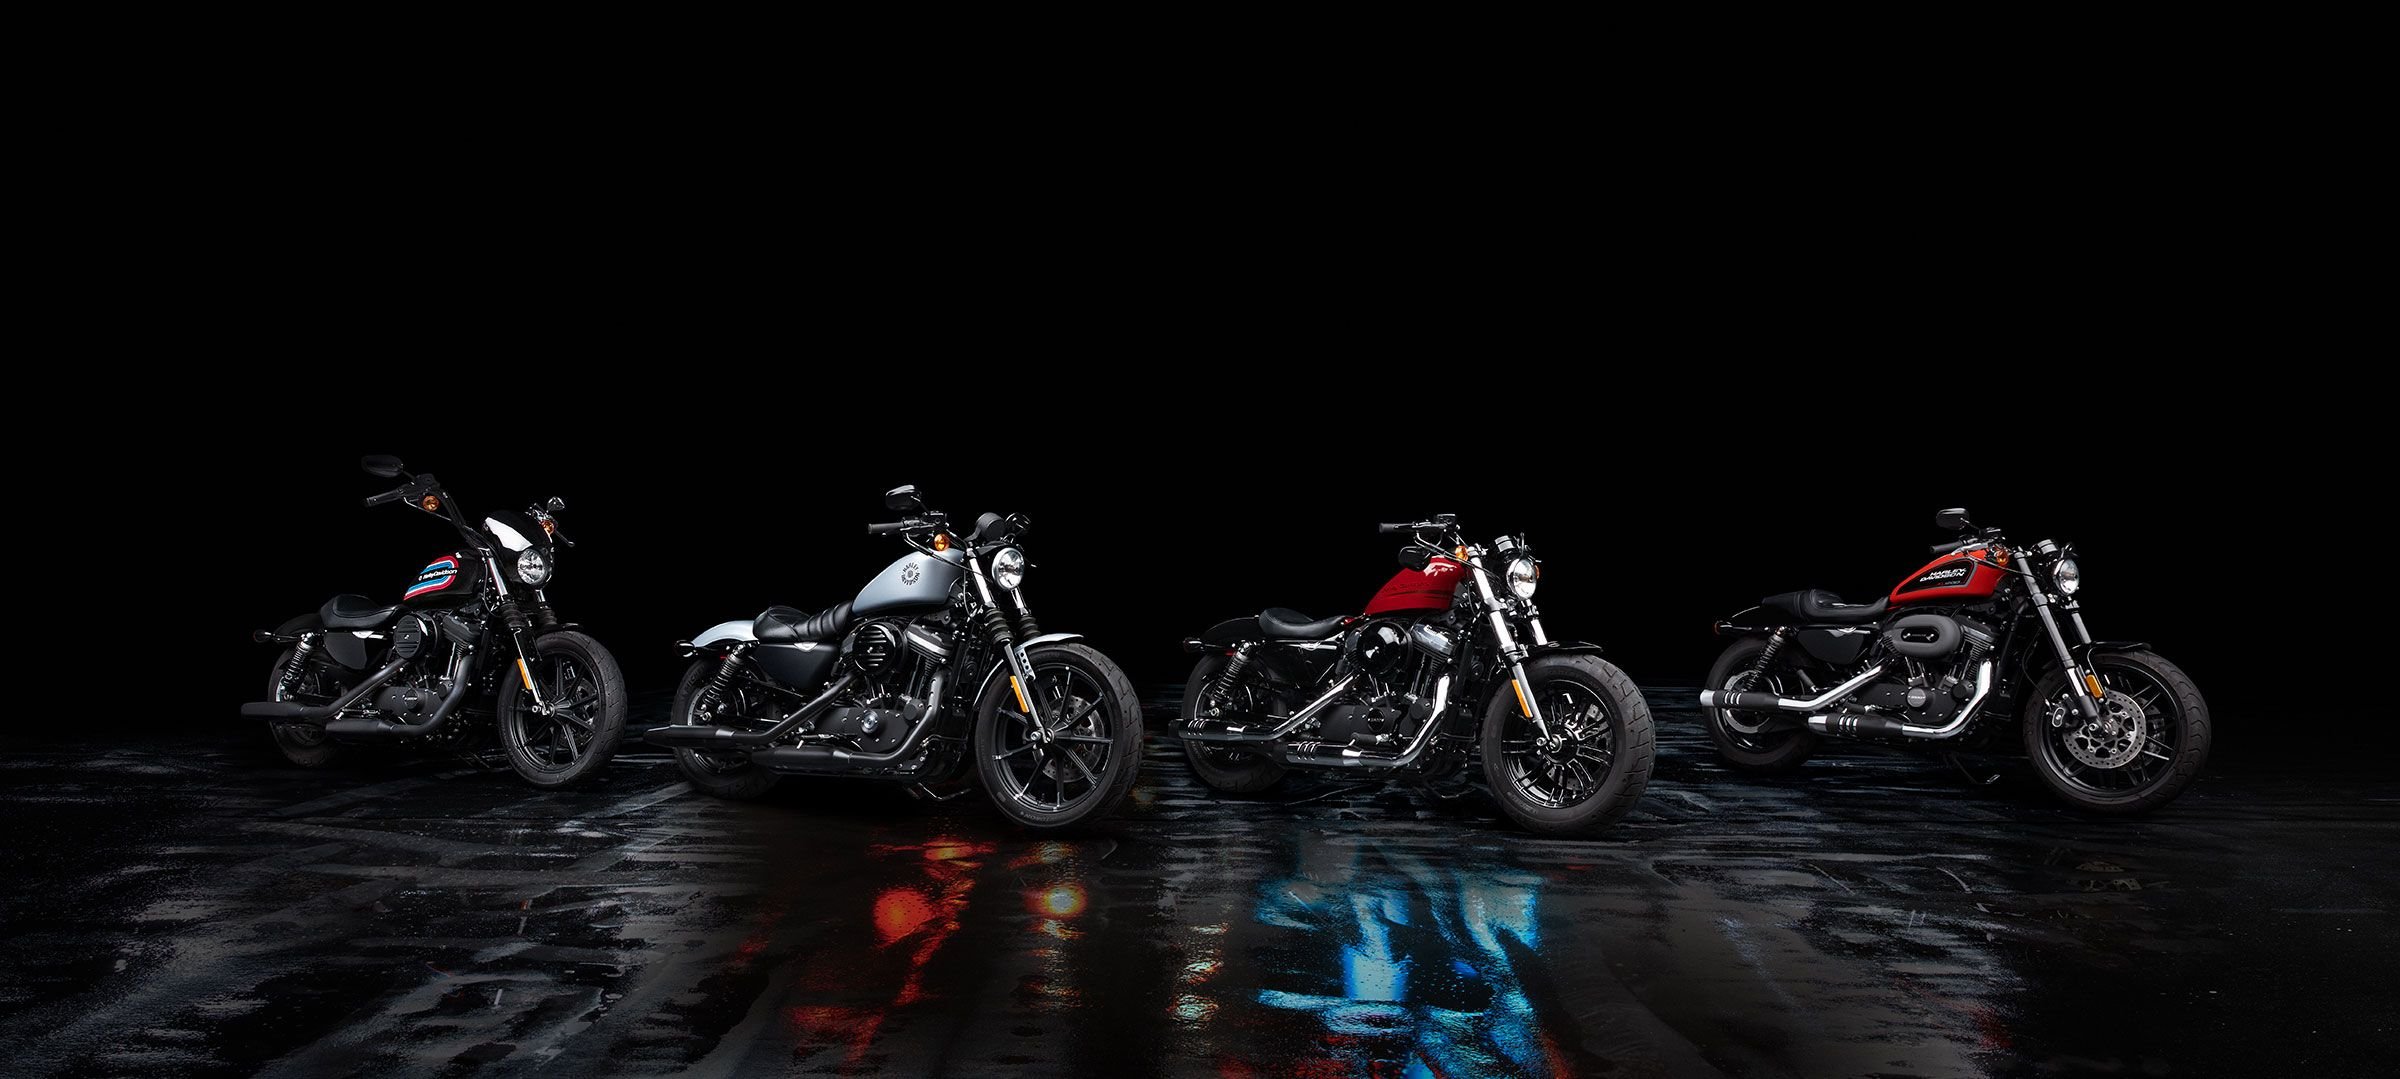 New & Used Motorcycle Dealer | Tifton Harley-Davidson®